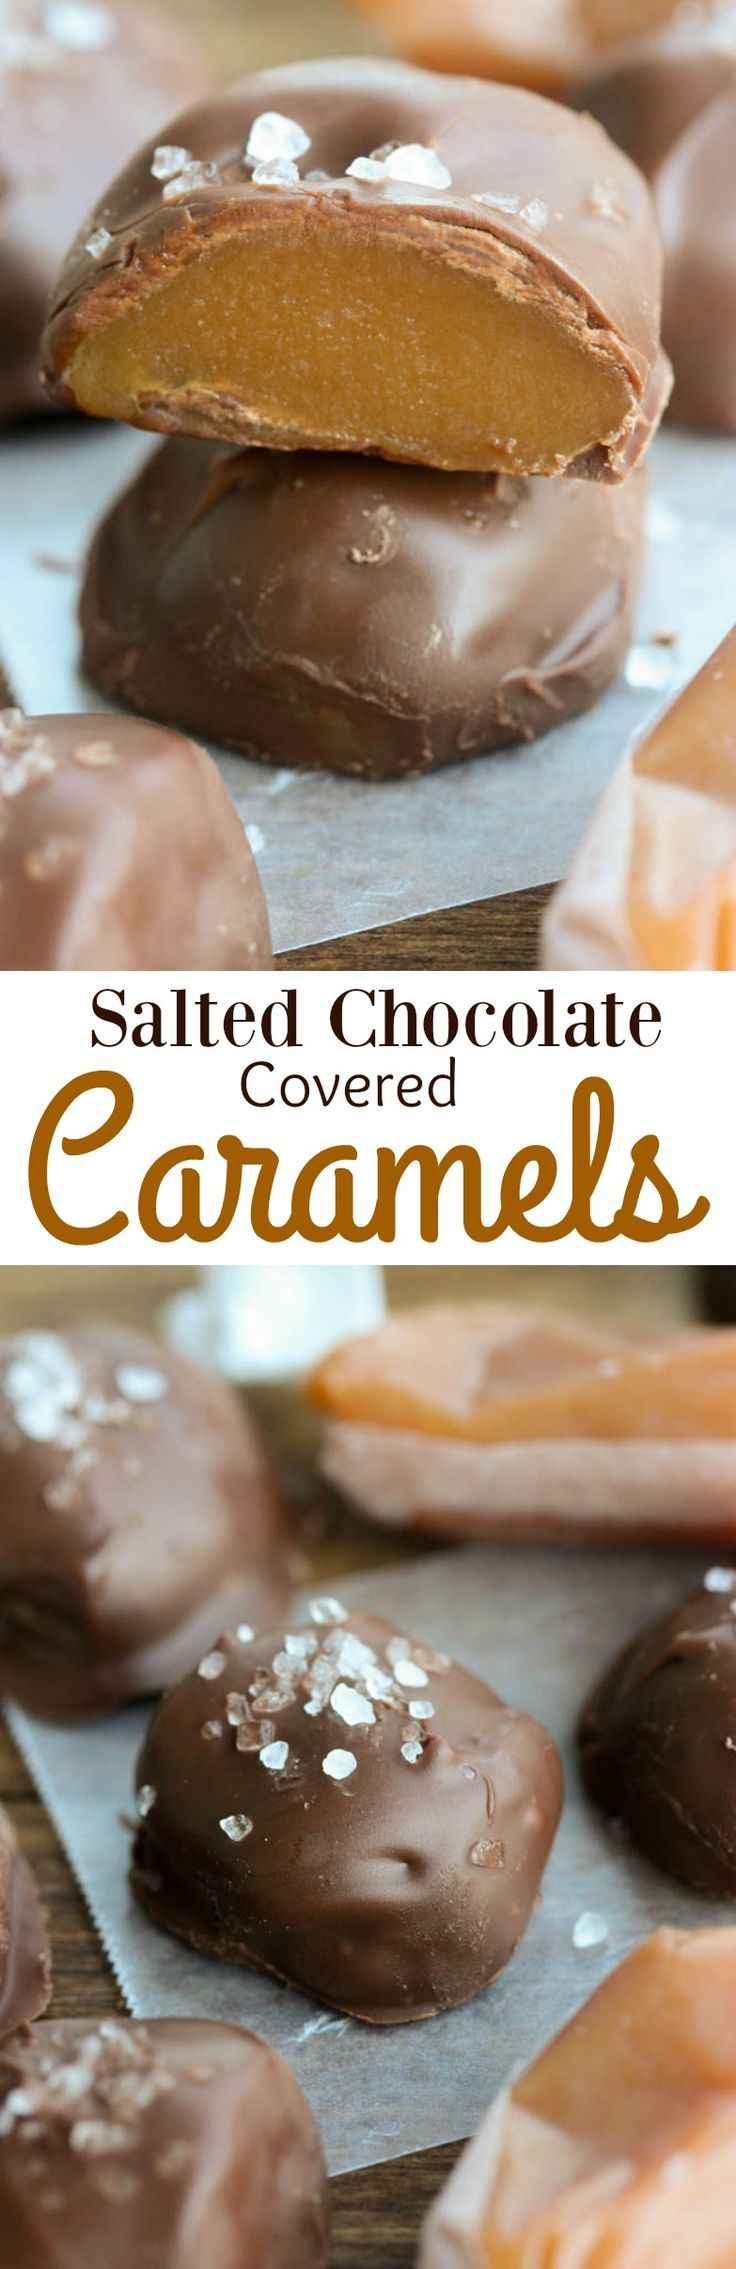 Salted Chocolate Covered Caramels-Soft homemade caramels covered in chocolate and sprinkled with sea salt.   Tastes Better From Scratch